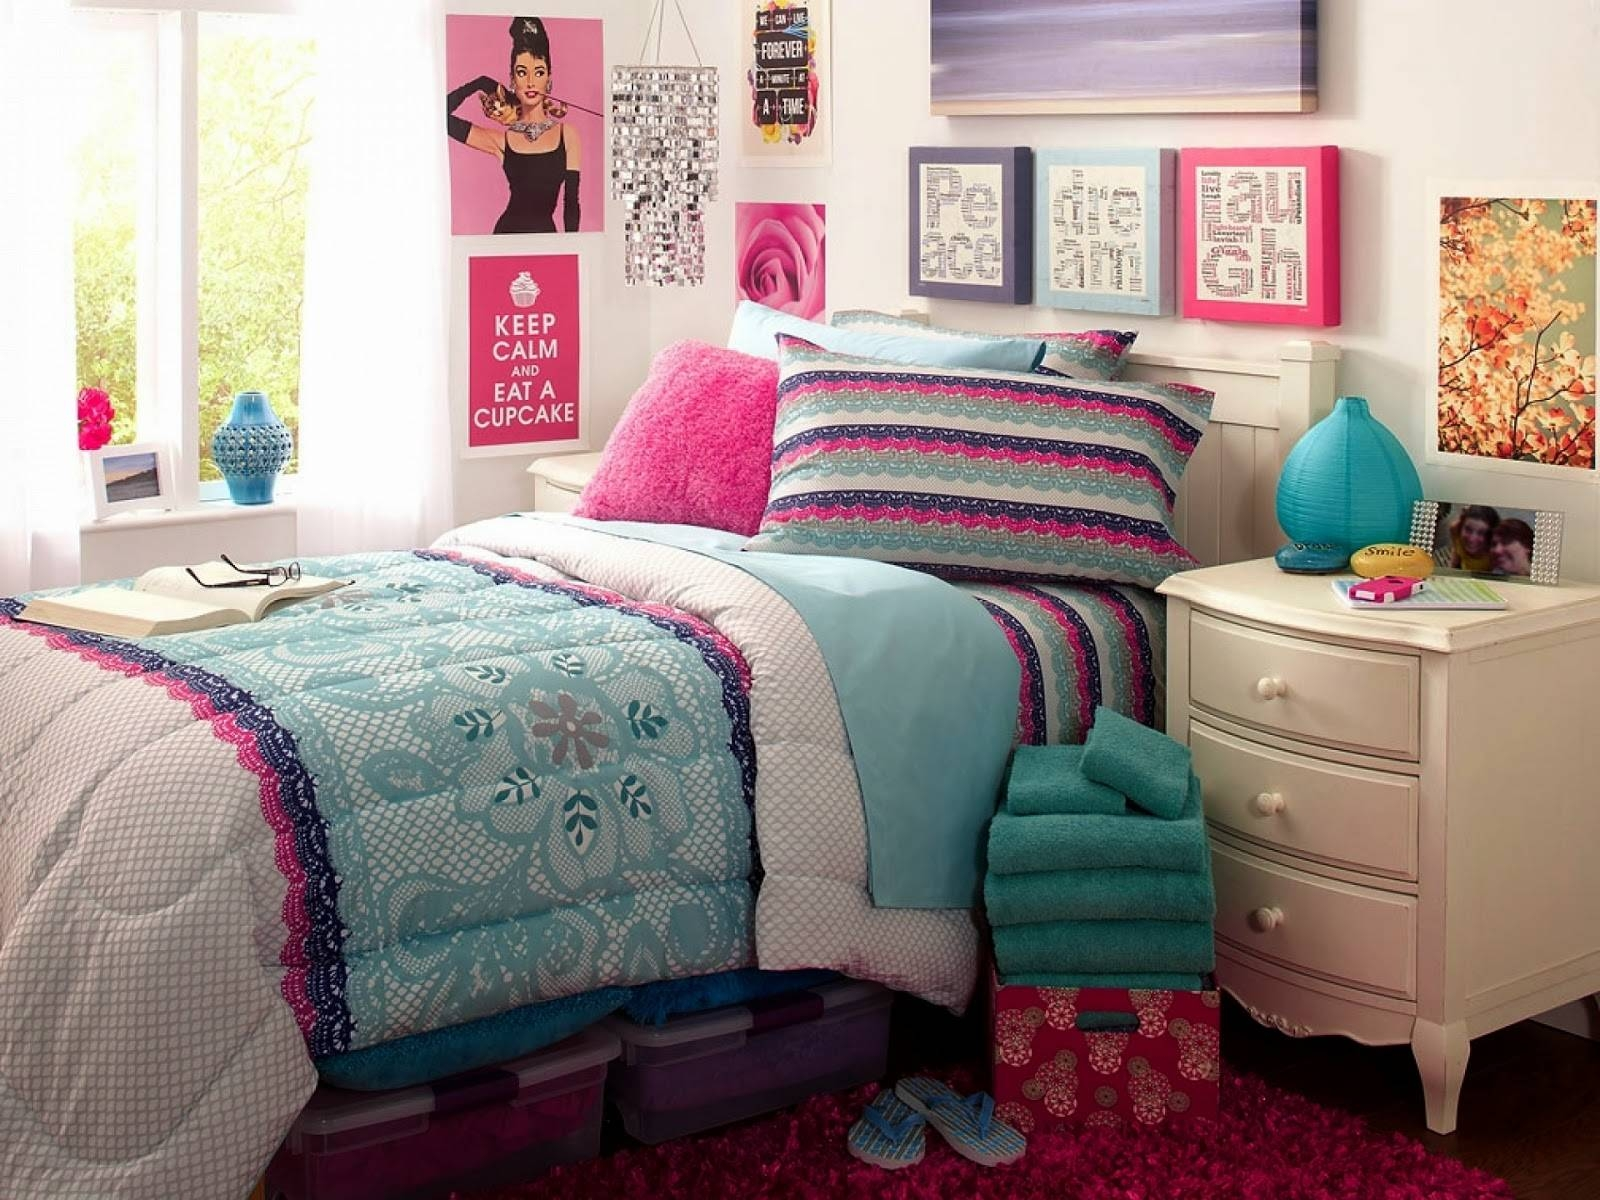 Cool Wall Art For Teens Home Design Wonderfull Beautiful And Cool Regarding Current Wall Art For Teens (View 5 of 20)